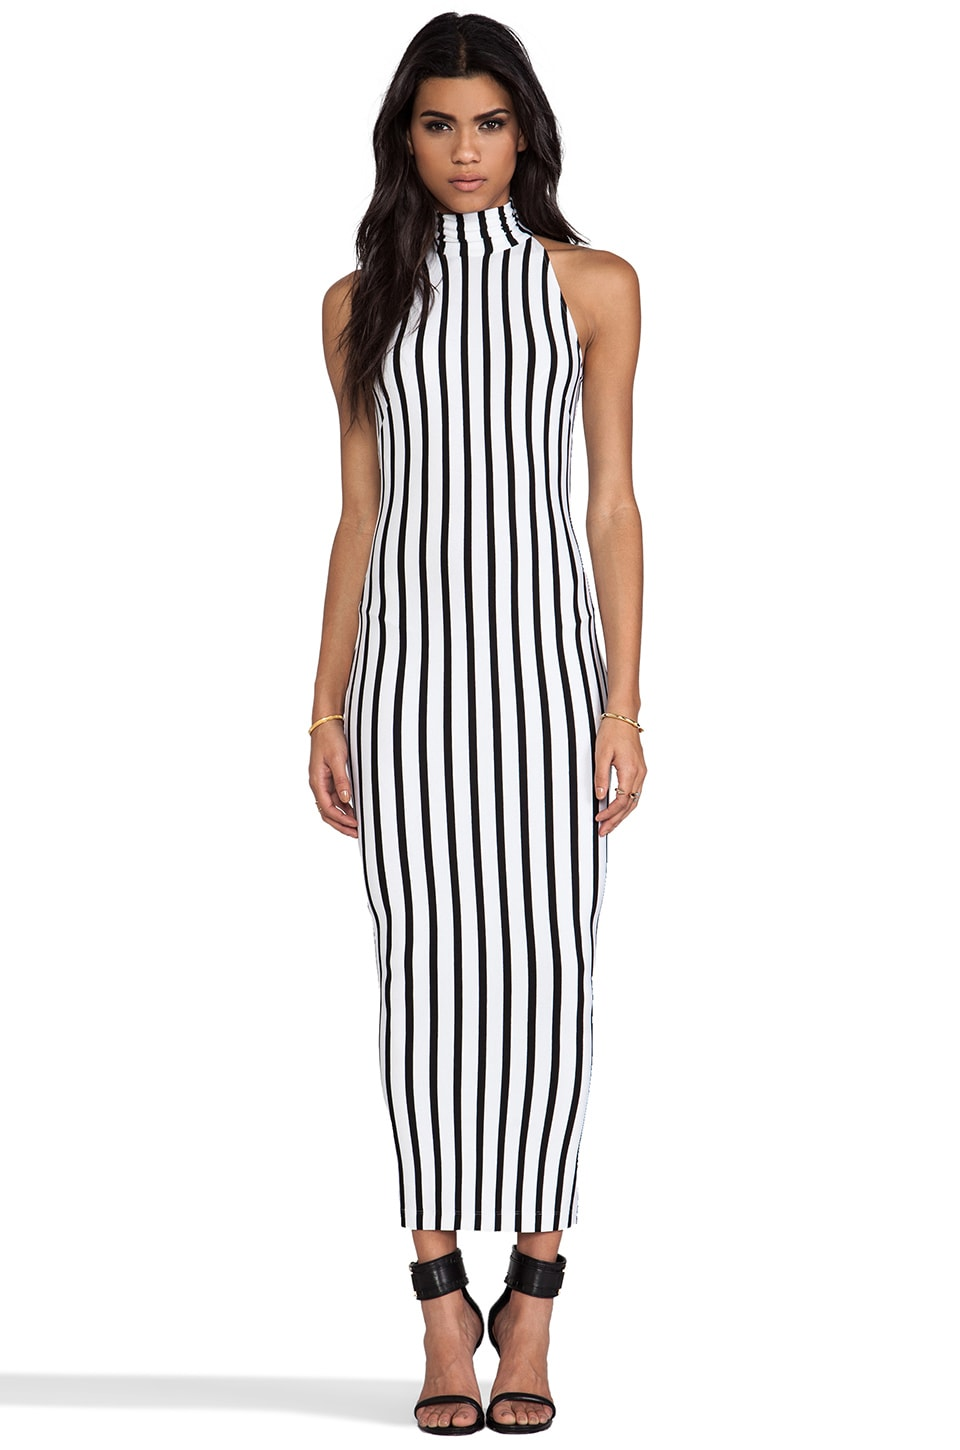 Torn by Ronny Kobo Claudia Long Dress in Black & White Combo